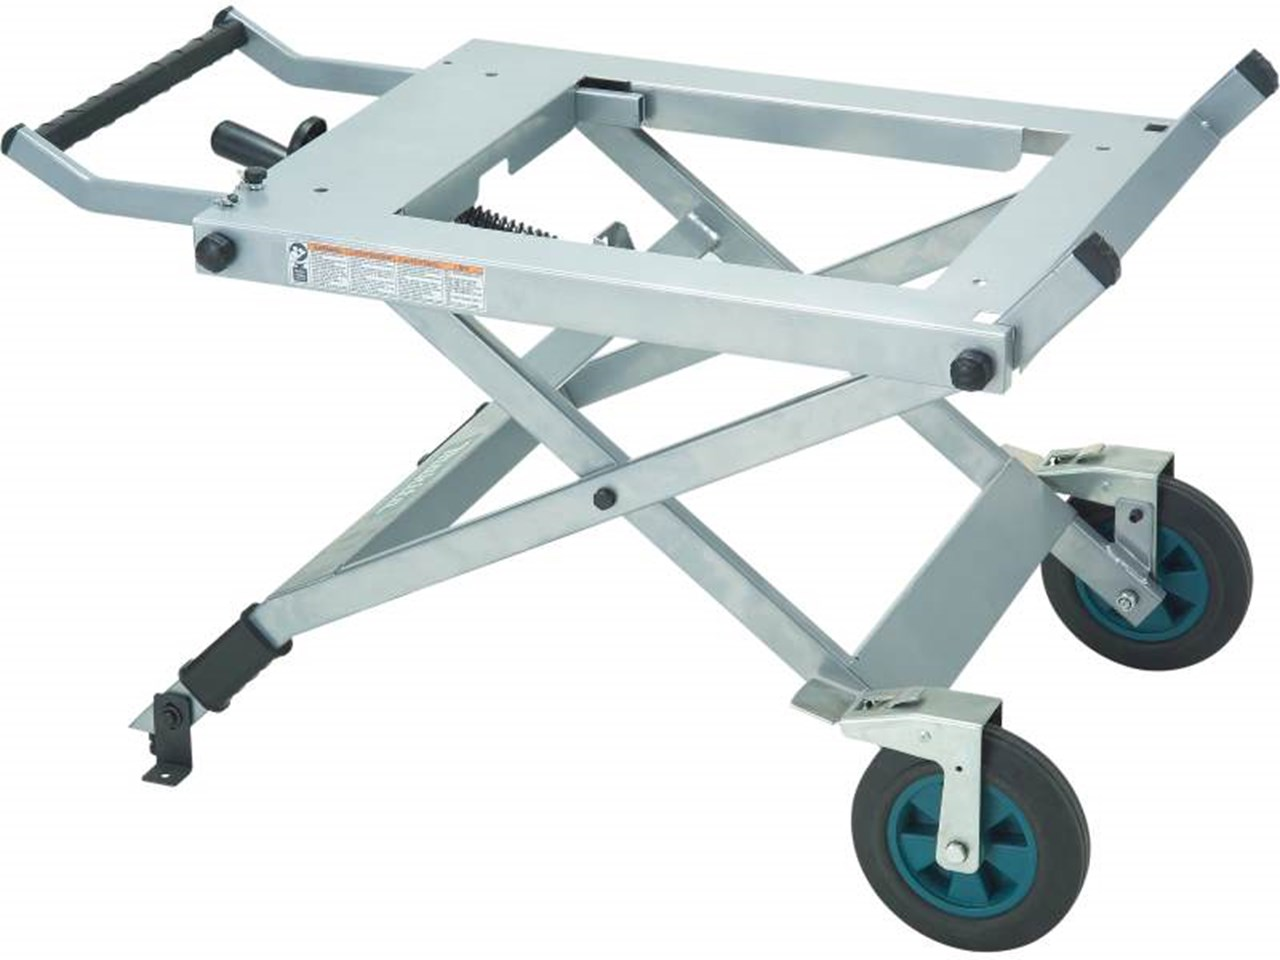 Makita JM27000300 WST03 Legstand for MLT100 Table Saw